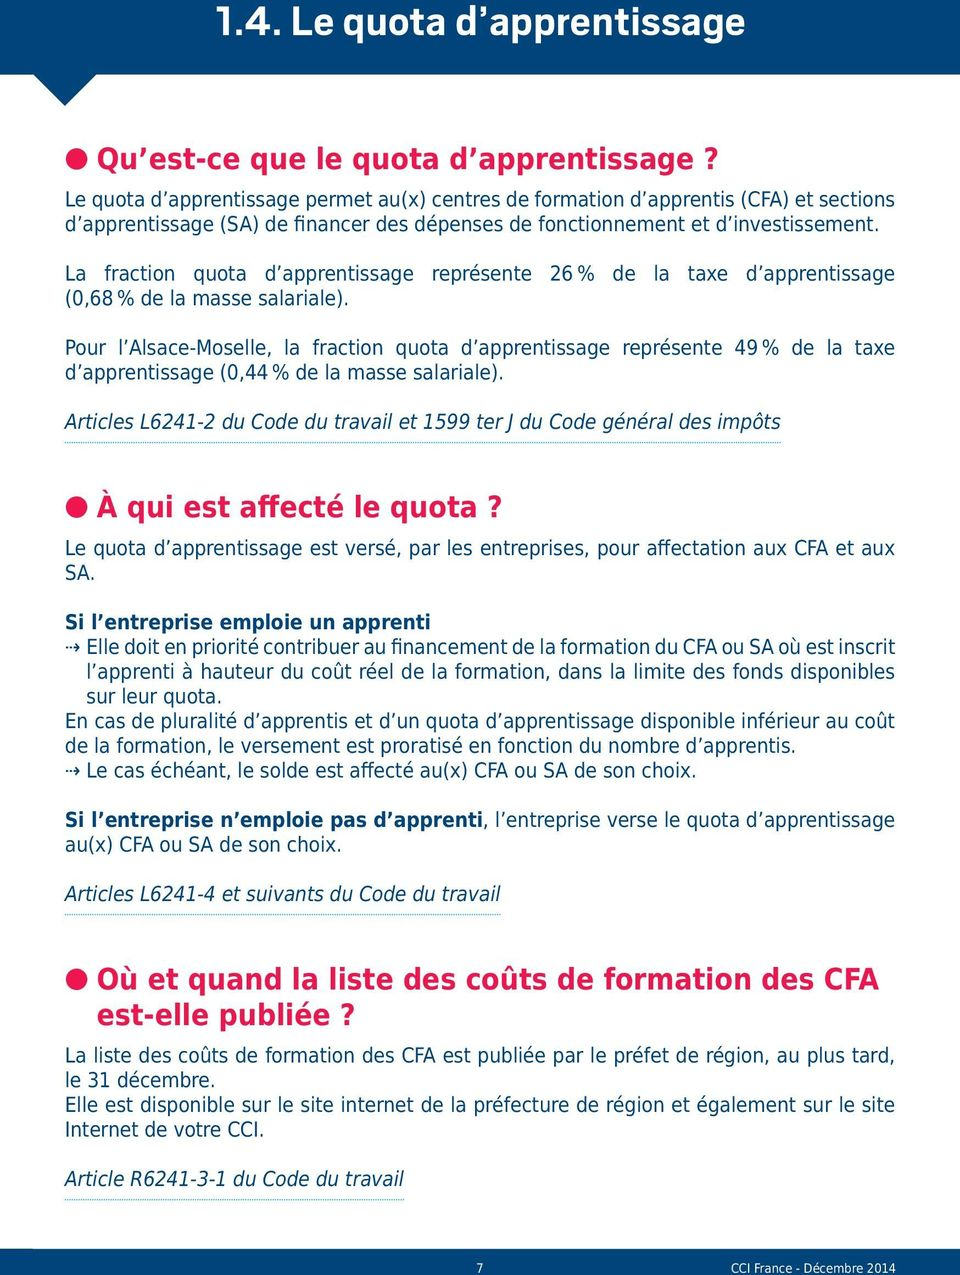 La fraction quota d apprentissage représente 26 % de la taxe d apprentissage (0,68 % de la masse salariale).